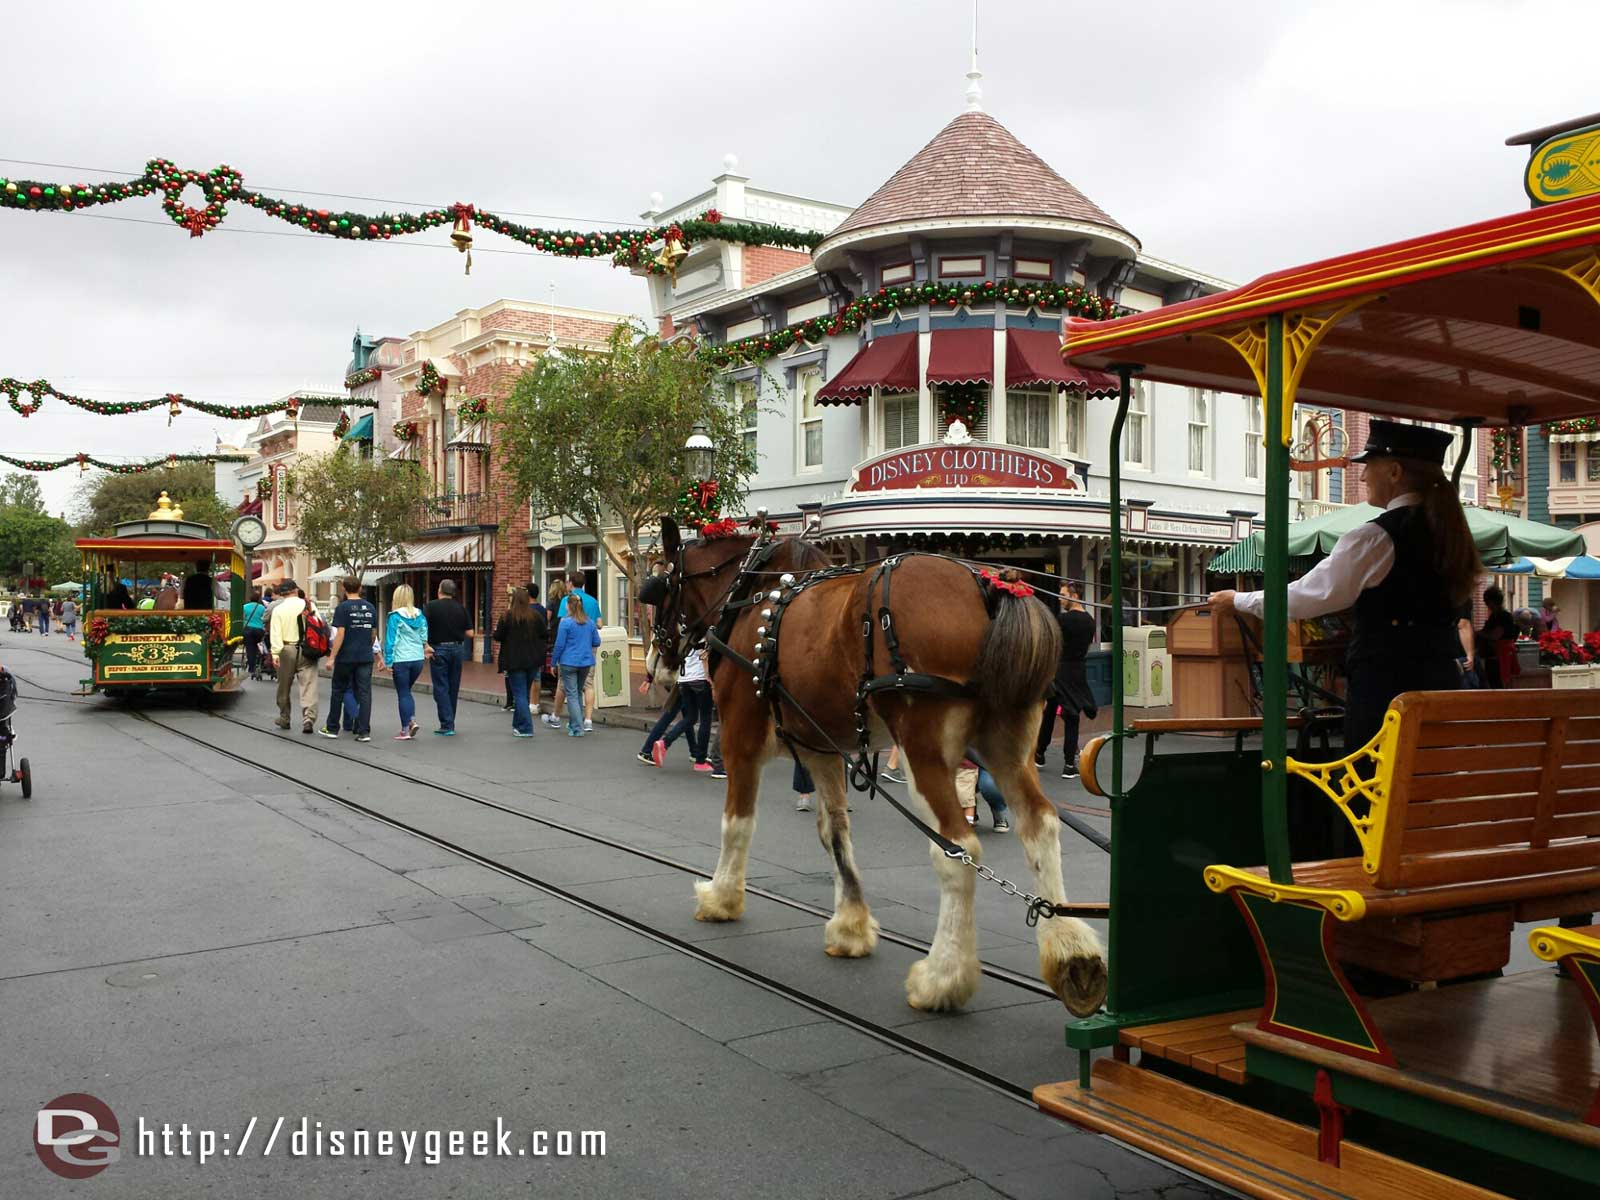 Walking up Main Street USA with the horse drawn street cars